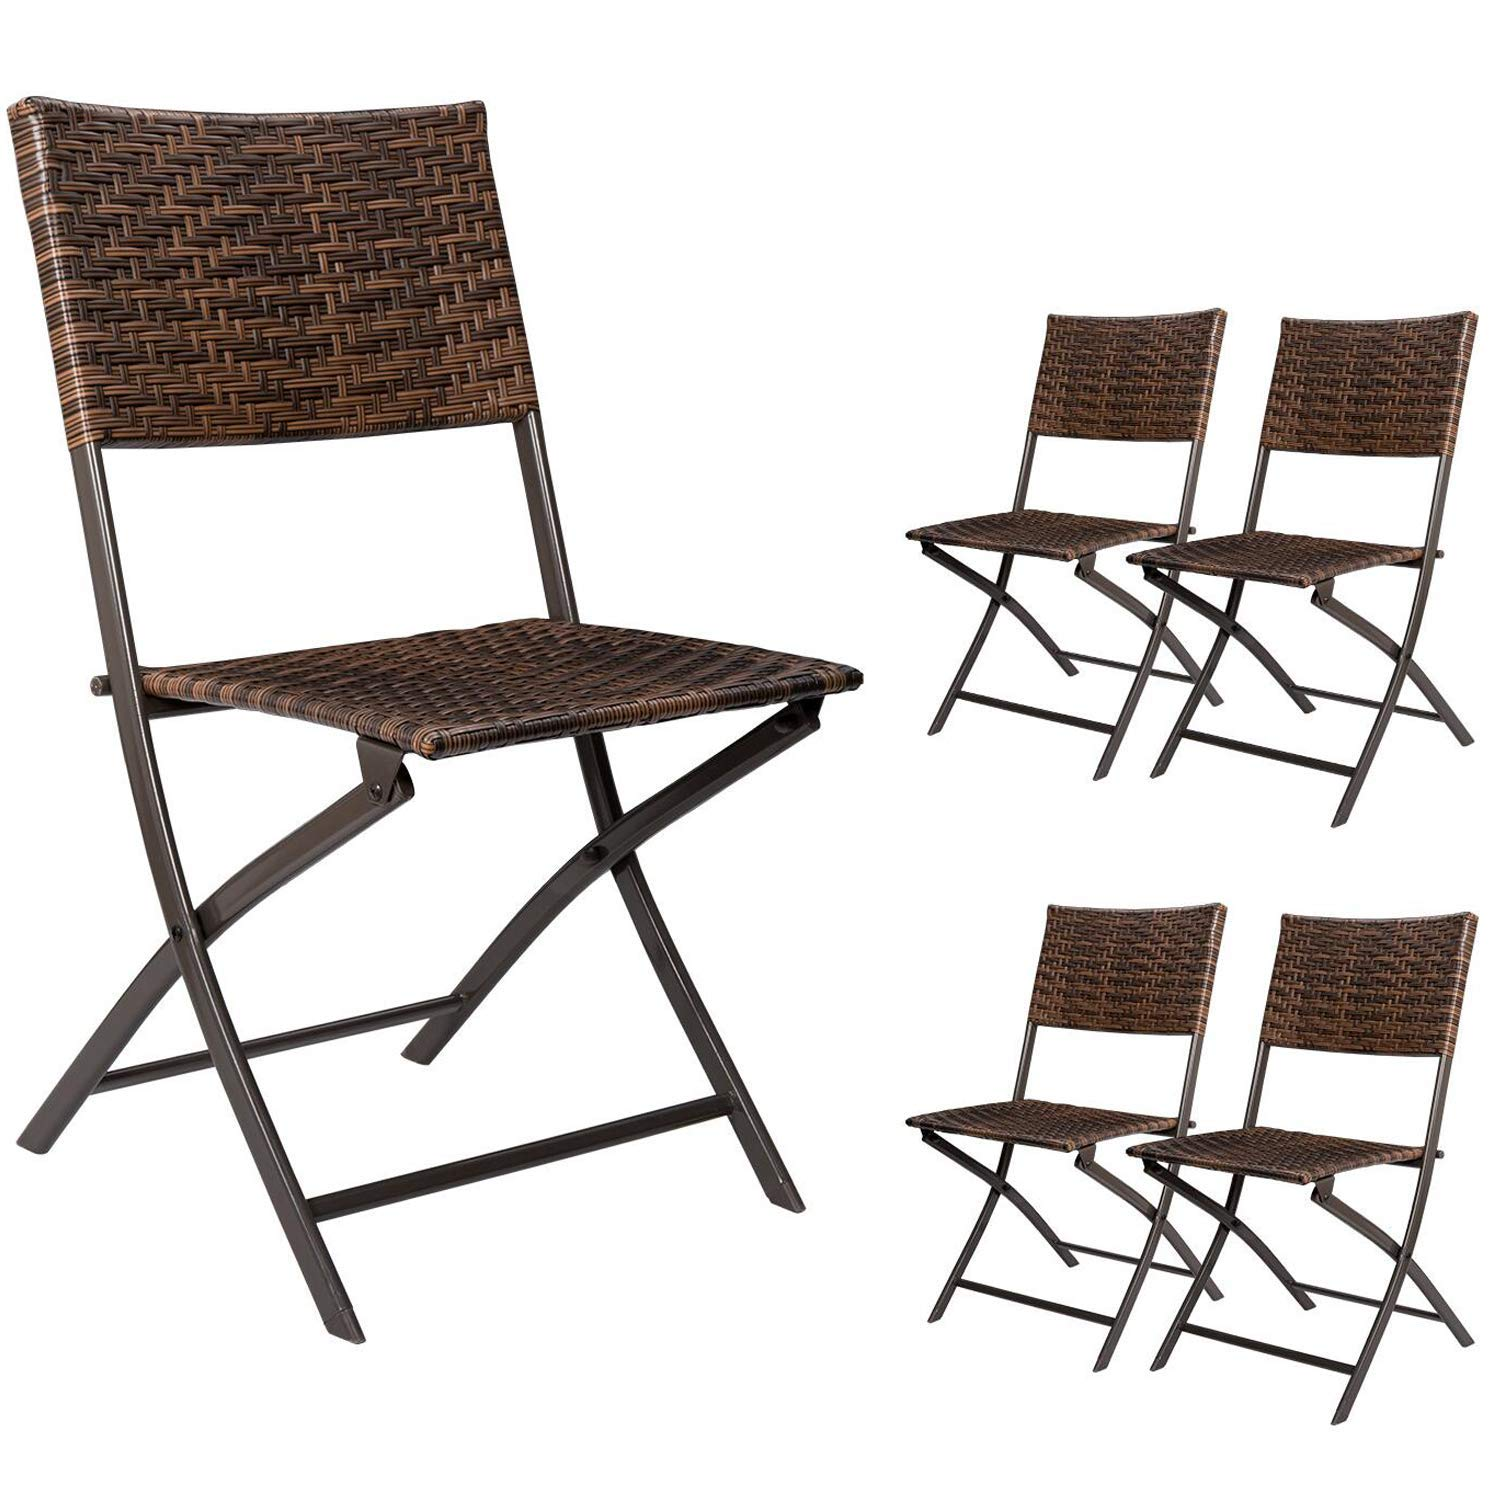 Devoko Rattan Patio Dining Chair 4 Pieces Space Saving Deck Camping Chairs Garden Pool Beach Lawn Using Outdoor Folding Chair (Brown)